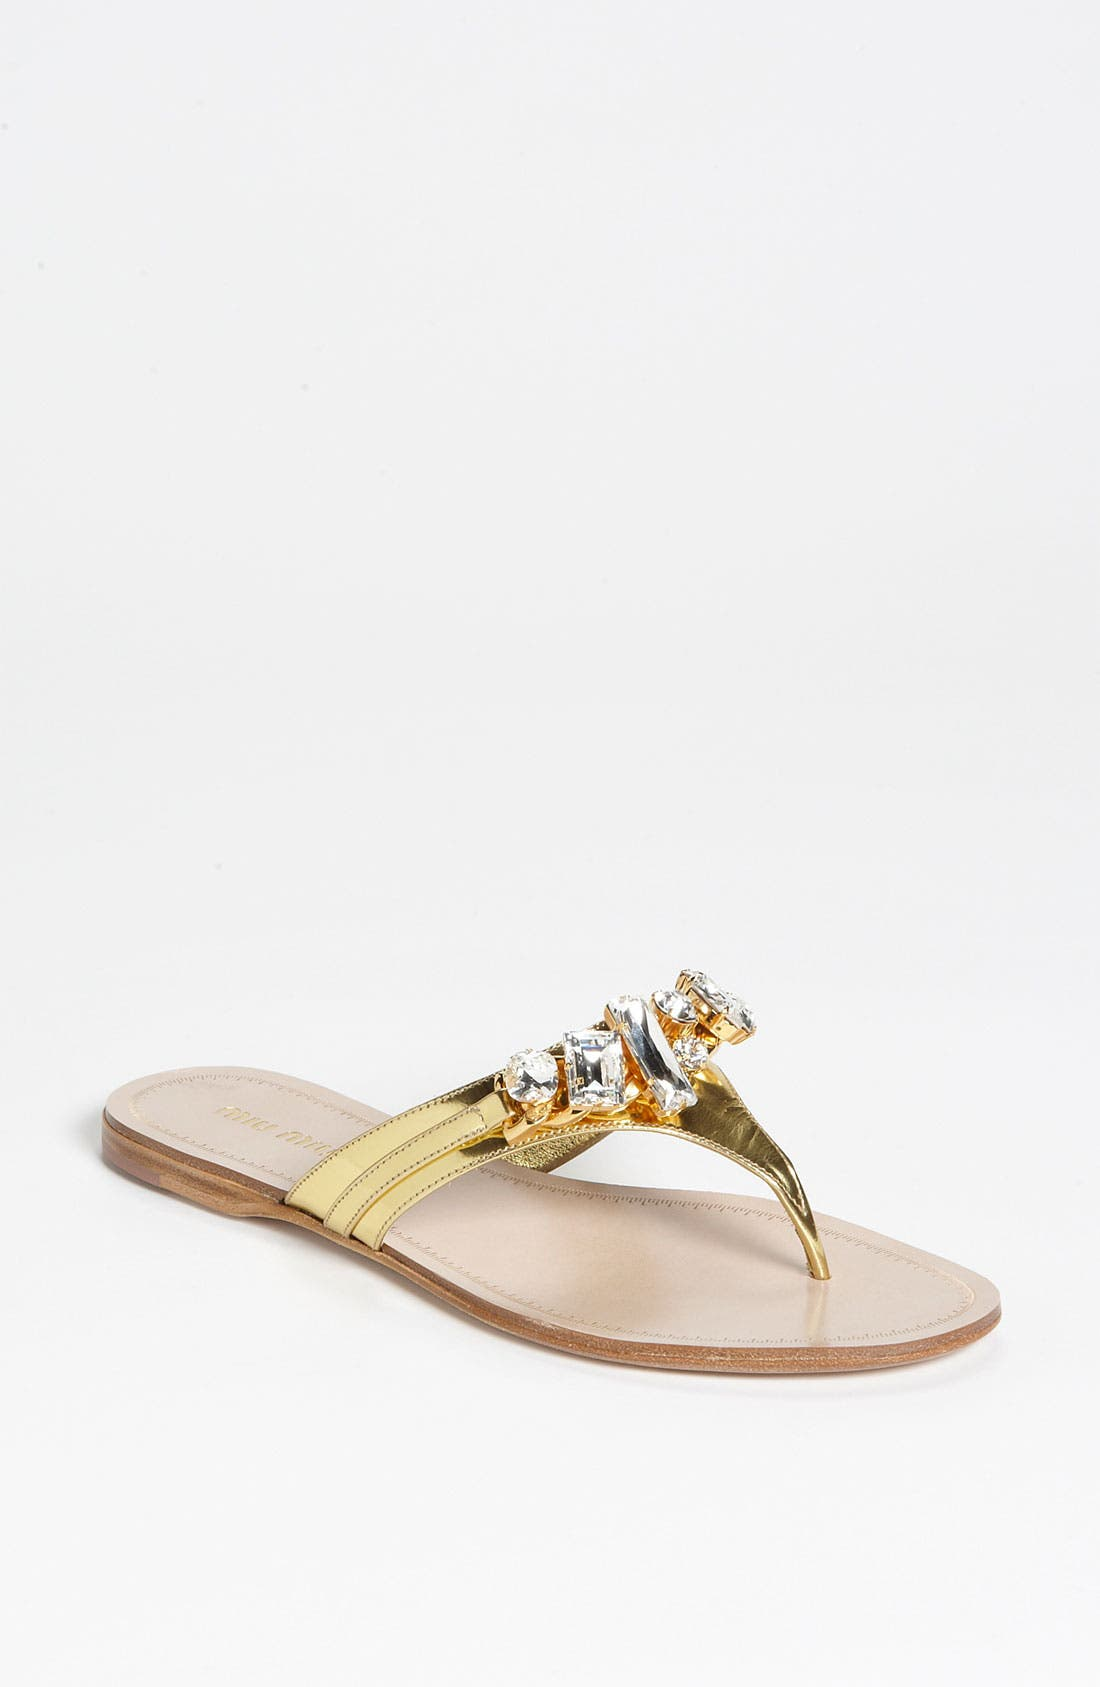 Main Image - Miu Miu Jeweled Thong Sandal